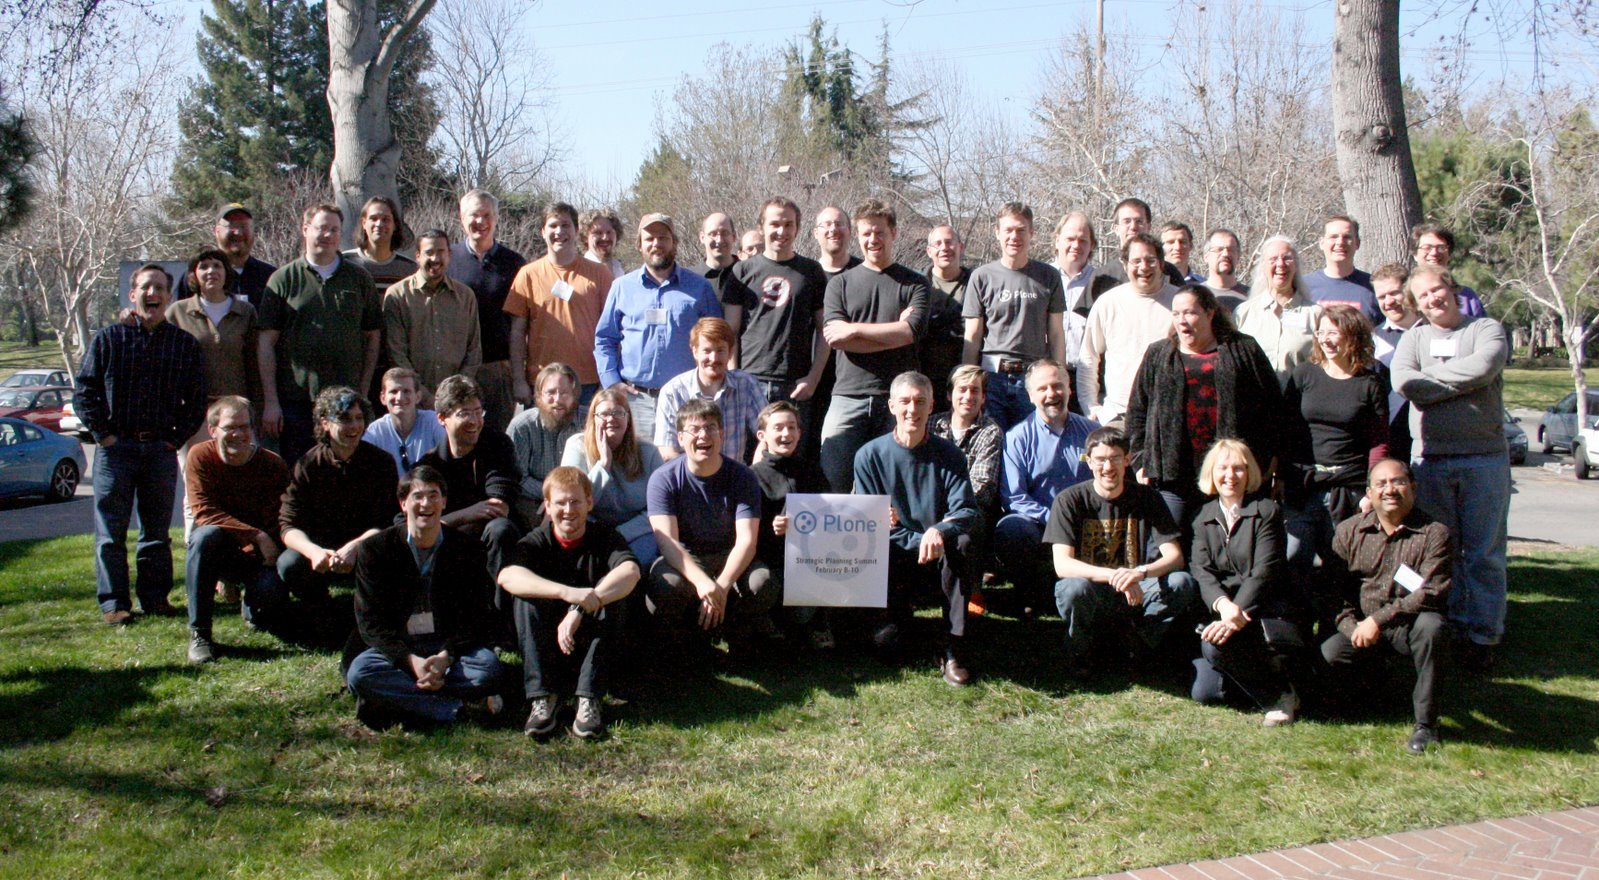 plonesummit08group.jpg